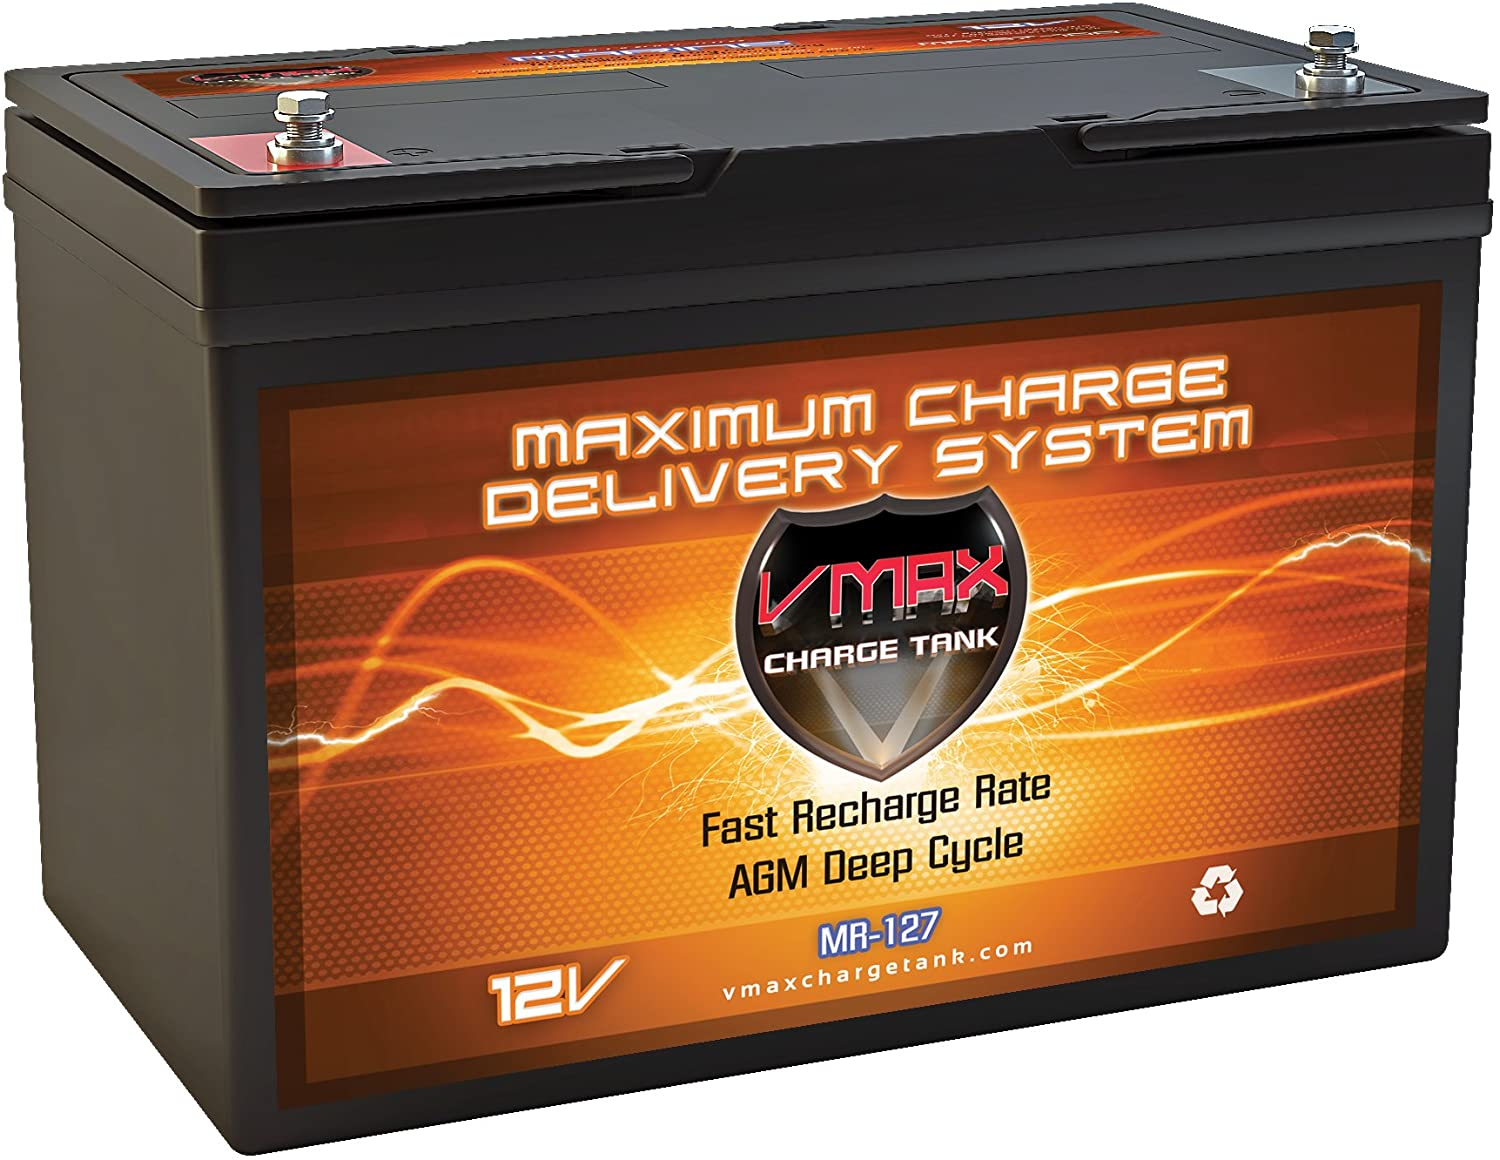 Amazon.com: VMAX MR127 12 Volt 100Ah AGM Deep Cycle Maintenance Free Battery Compatible with Boats and 40-100lb, minnkota, Cobra, sevylor and Other trolling Motor (Group 27 Marine Deep Cycle AGM Battery): Automotive